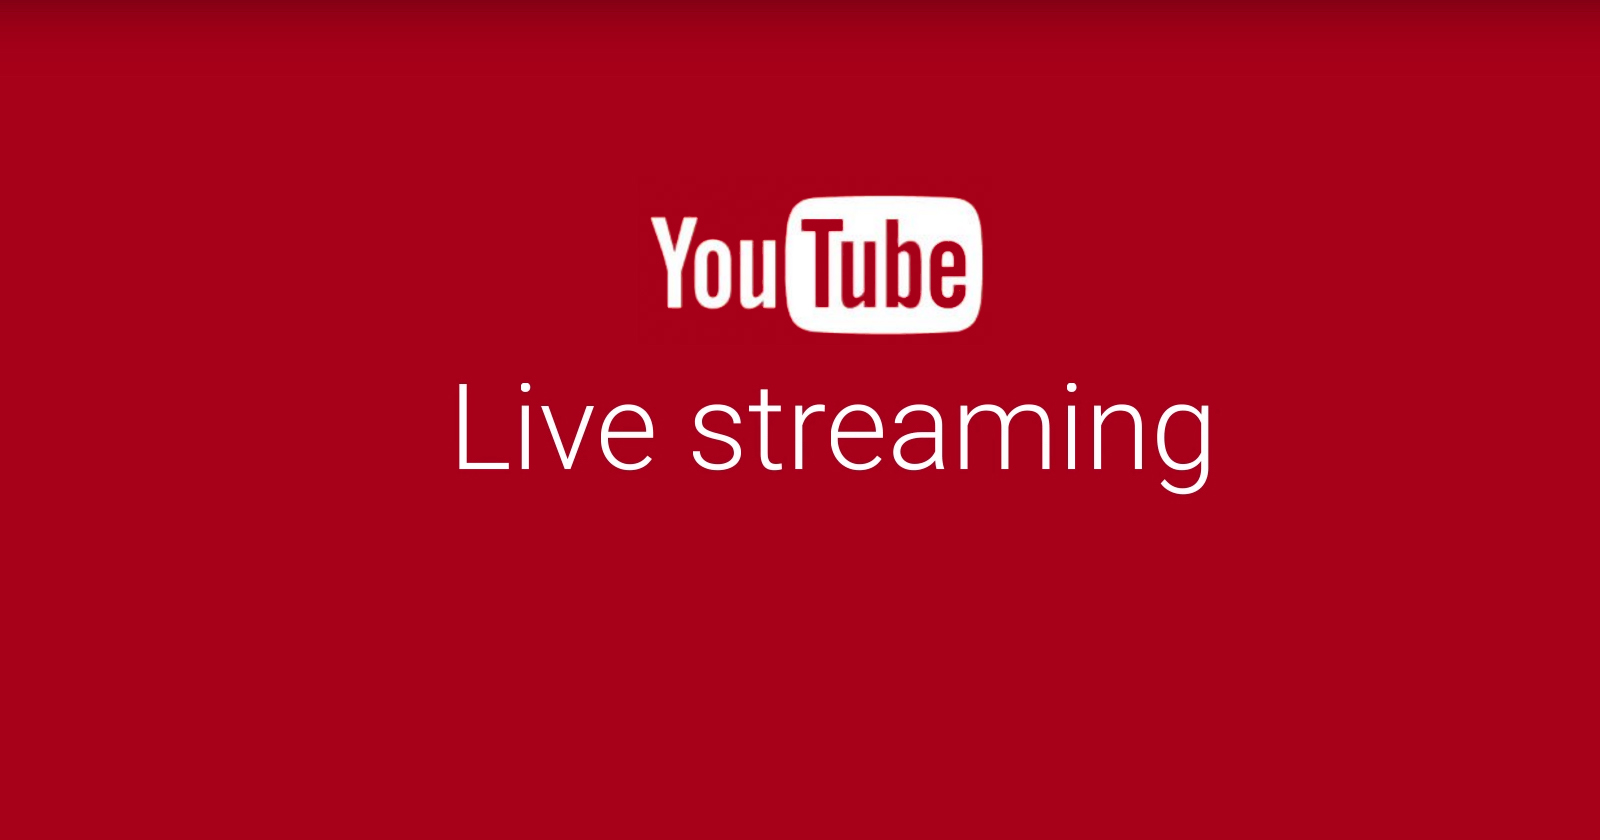 youtube live calendrier et replay lepoissonrouge le blog